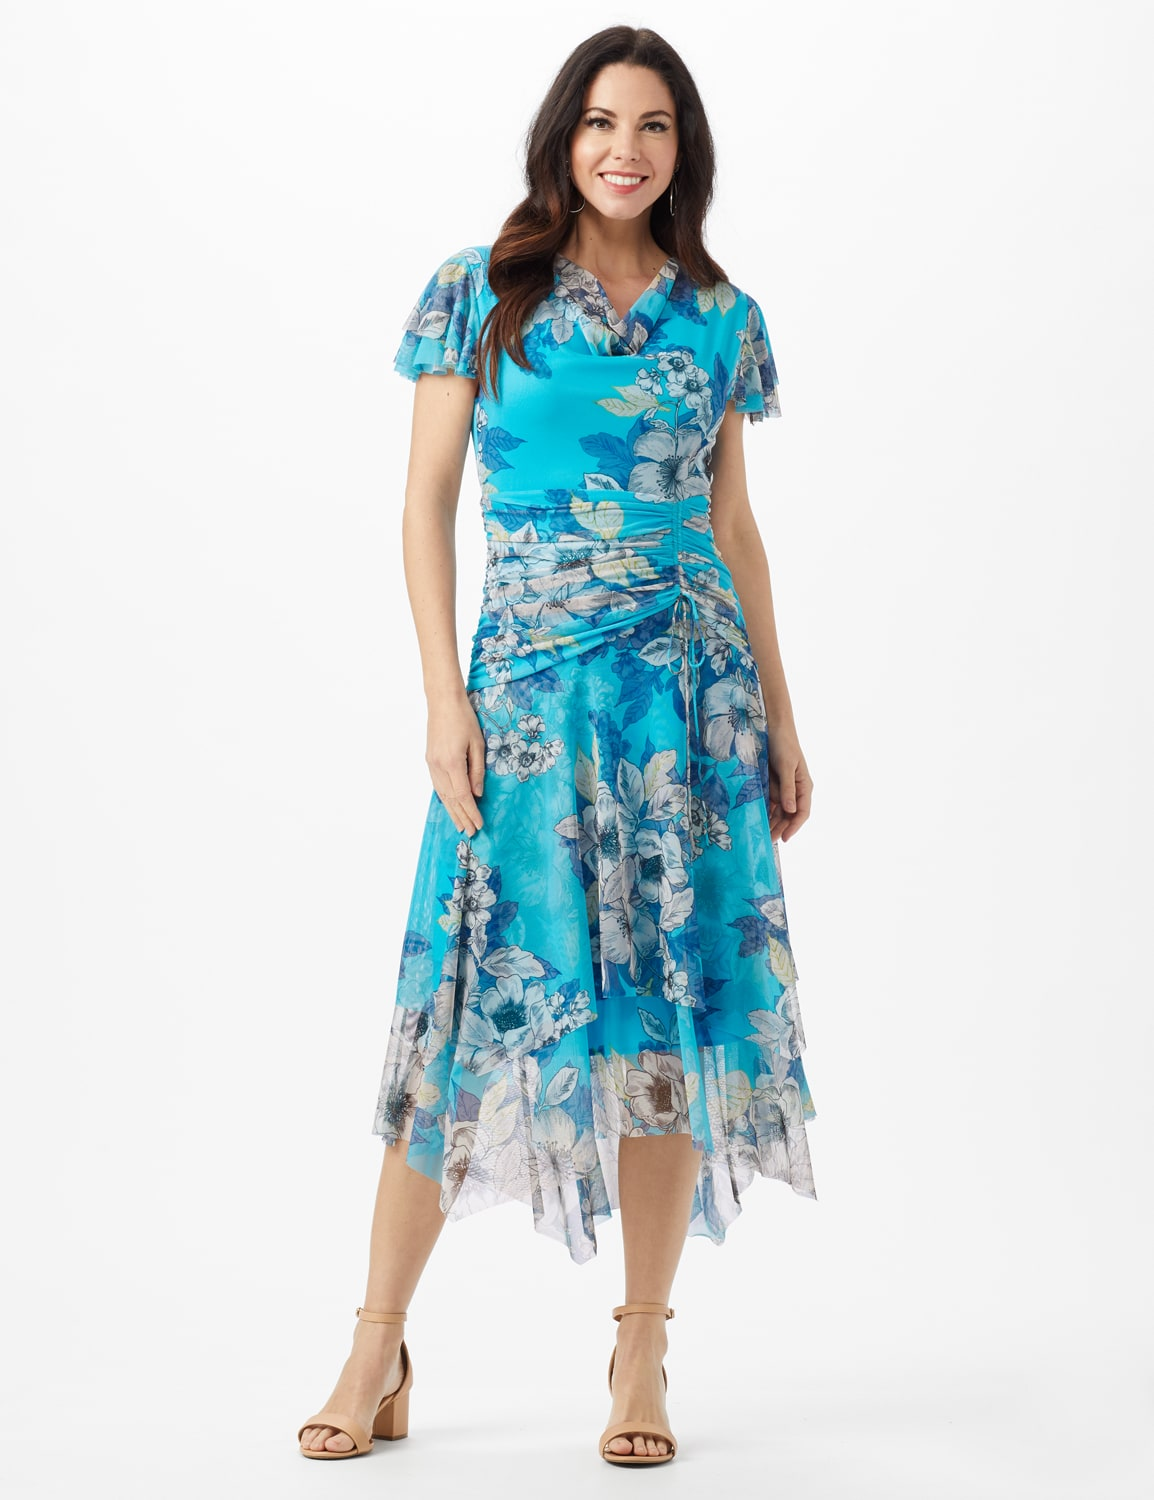 Mesh Floral Drape Neck Gathered Waist with Side Tie - Turq/Sand - Front